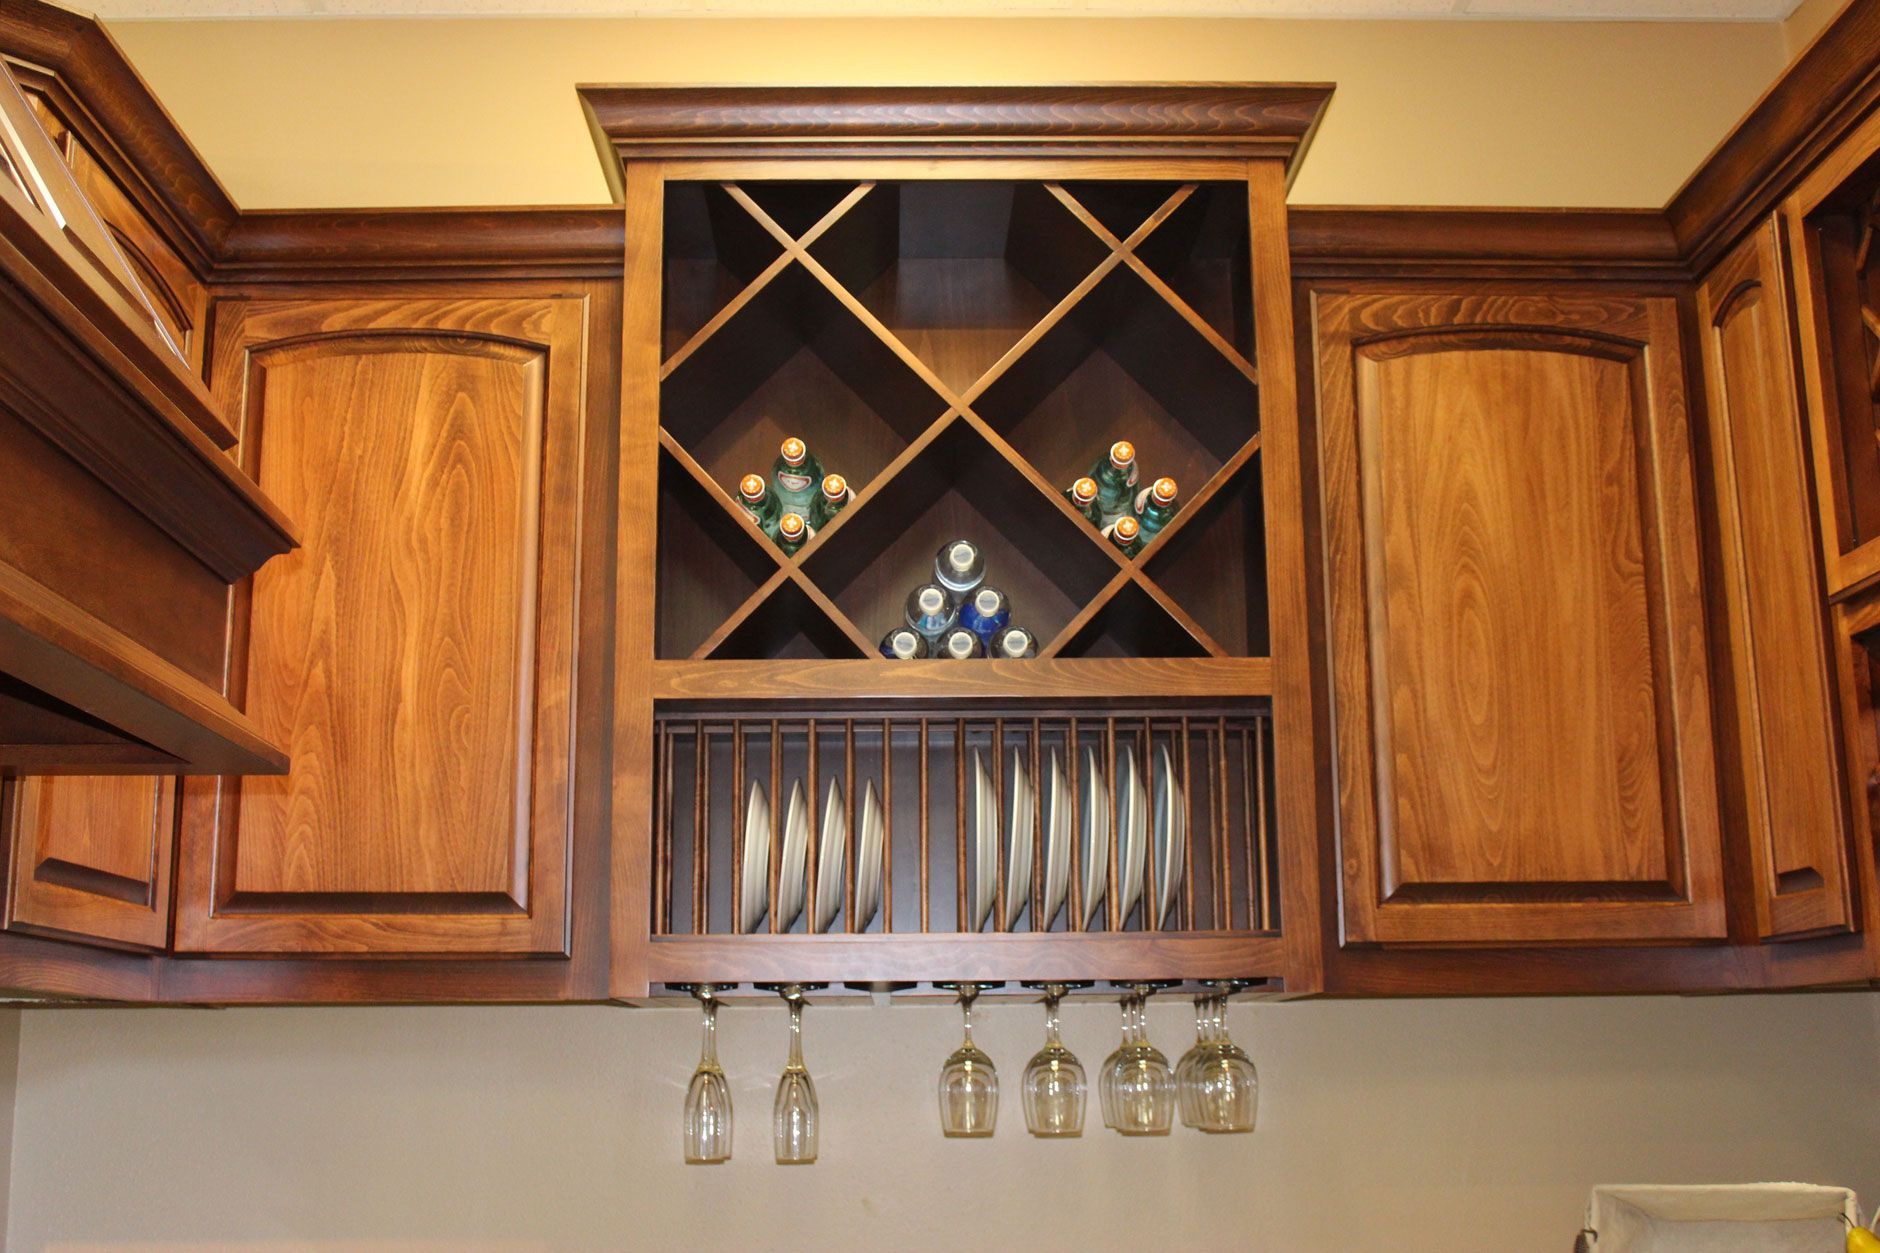 Wine Racks In Kitchen Cabinets Kitchen With Built In Big X Wine Rack Over Plate Rack And Stemware